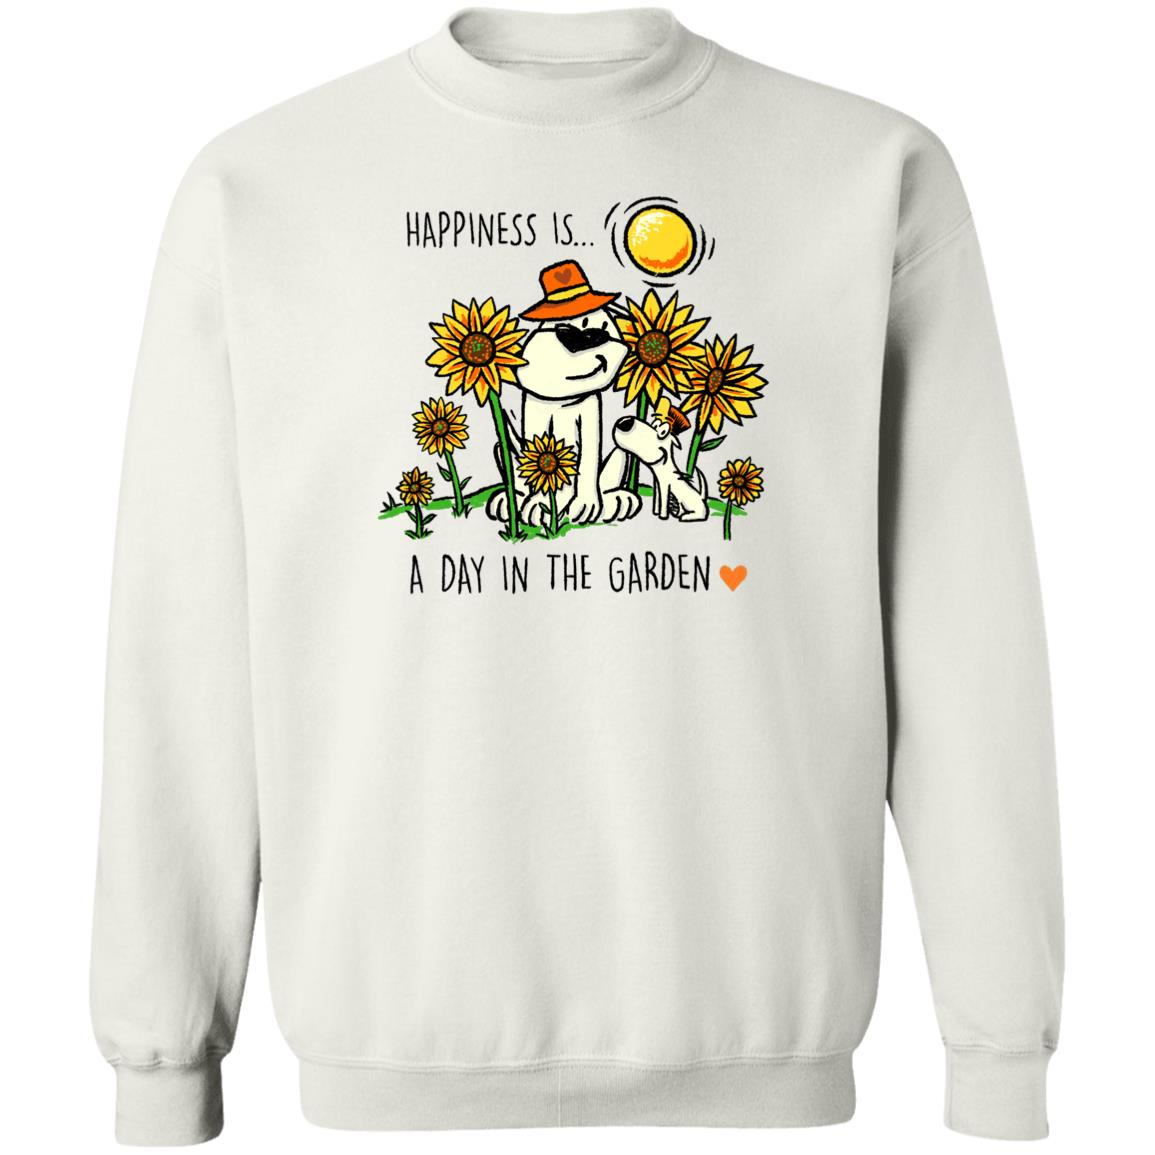 Happiness Is A Day In The Garden White Sweatshirt 🐾  Deal Up To 25% Off!